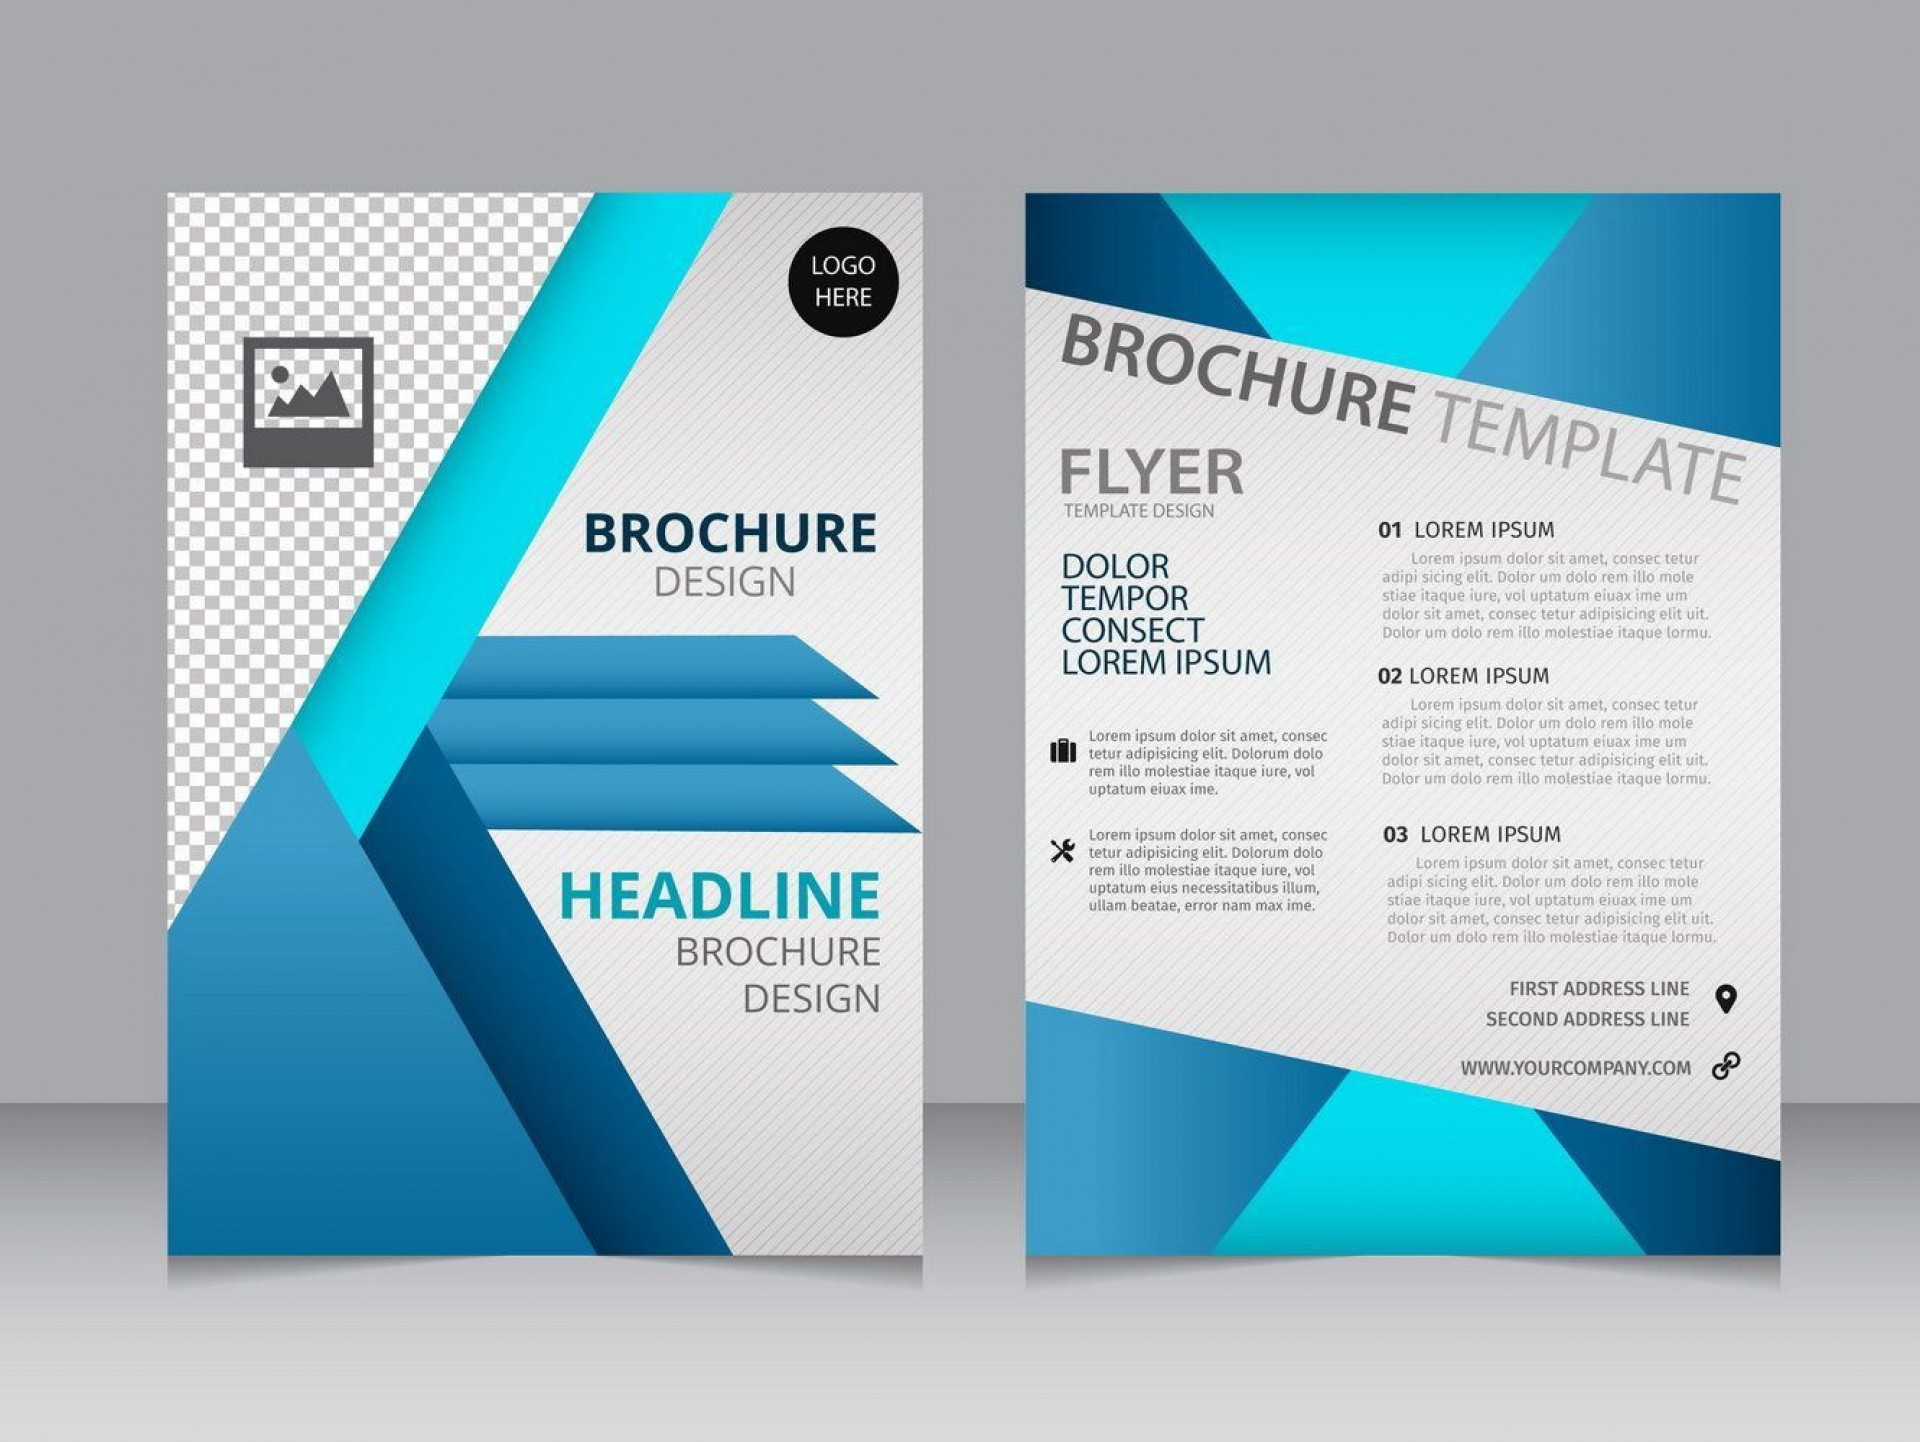 003 Impressive Free Download Flyer Template Concept  Photoshop For Microsoft Word Downloadable Publisher1920